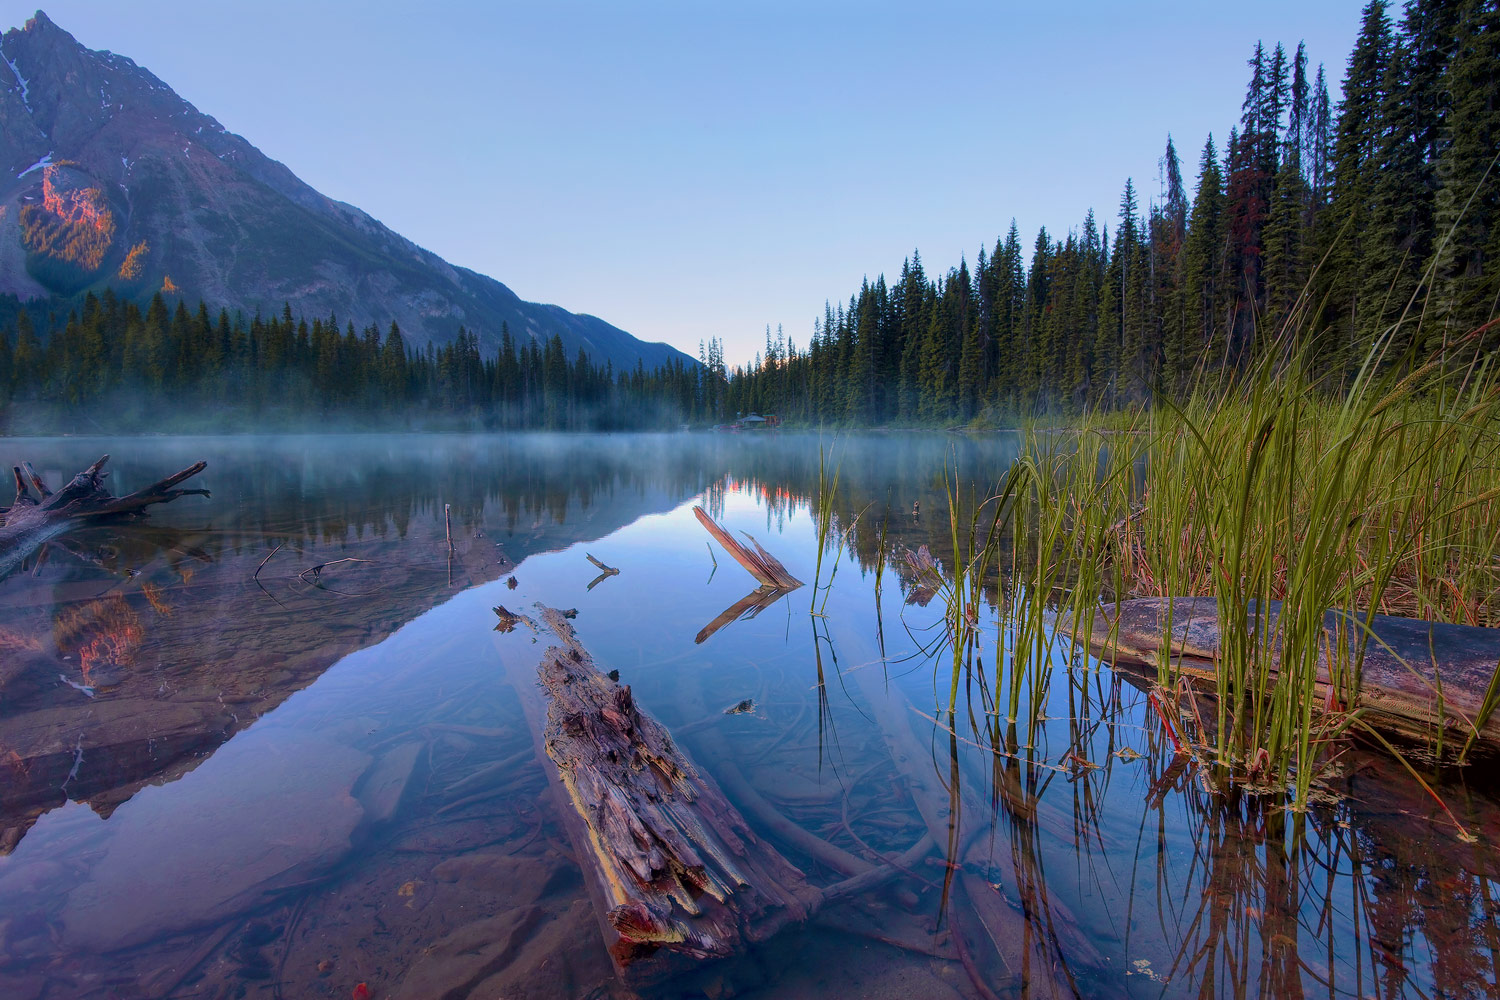 A sunrise landscape photograph taken on Emerald Lake in Yoho National Park during a calm morning with reflective water and mist combined with floating debris like logs and drift wood.